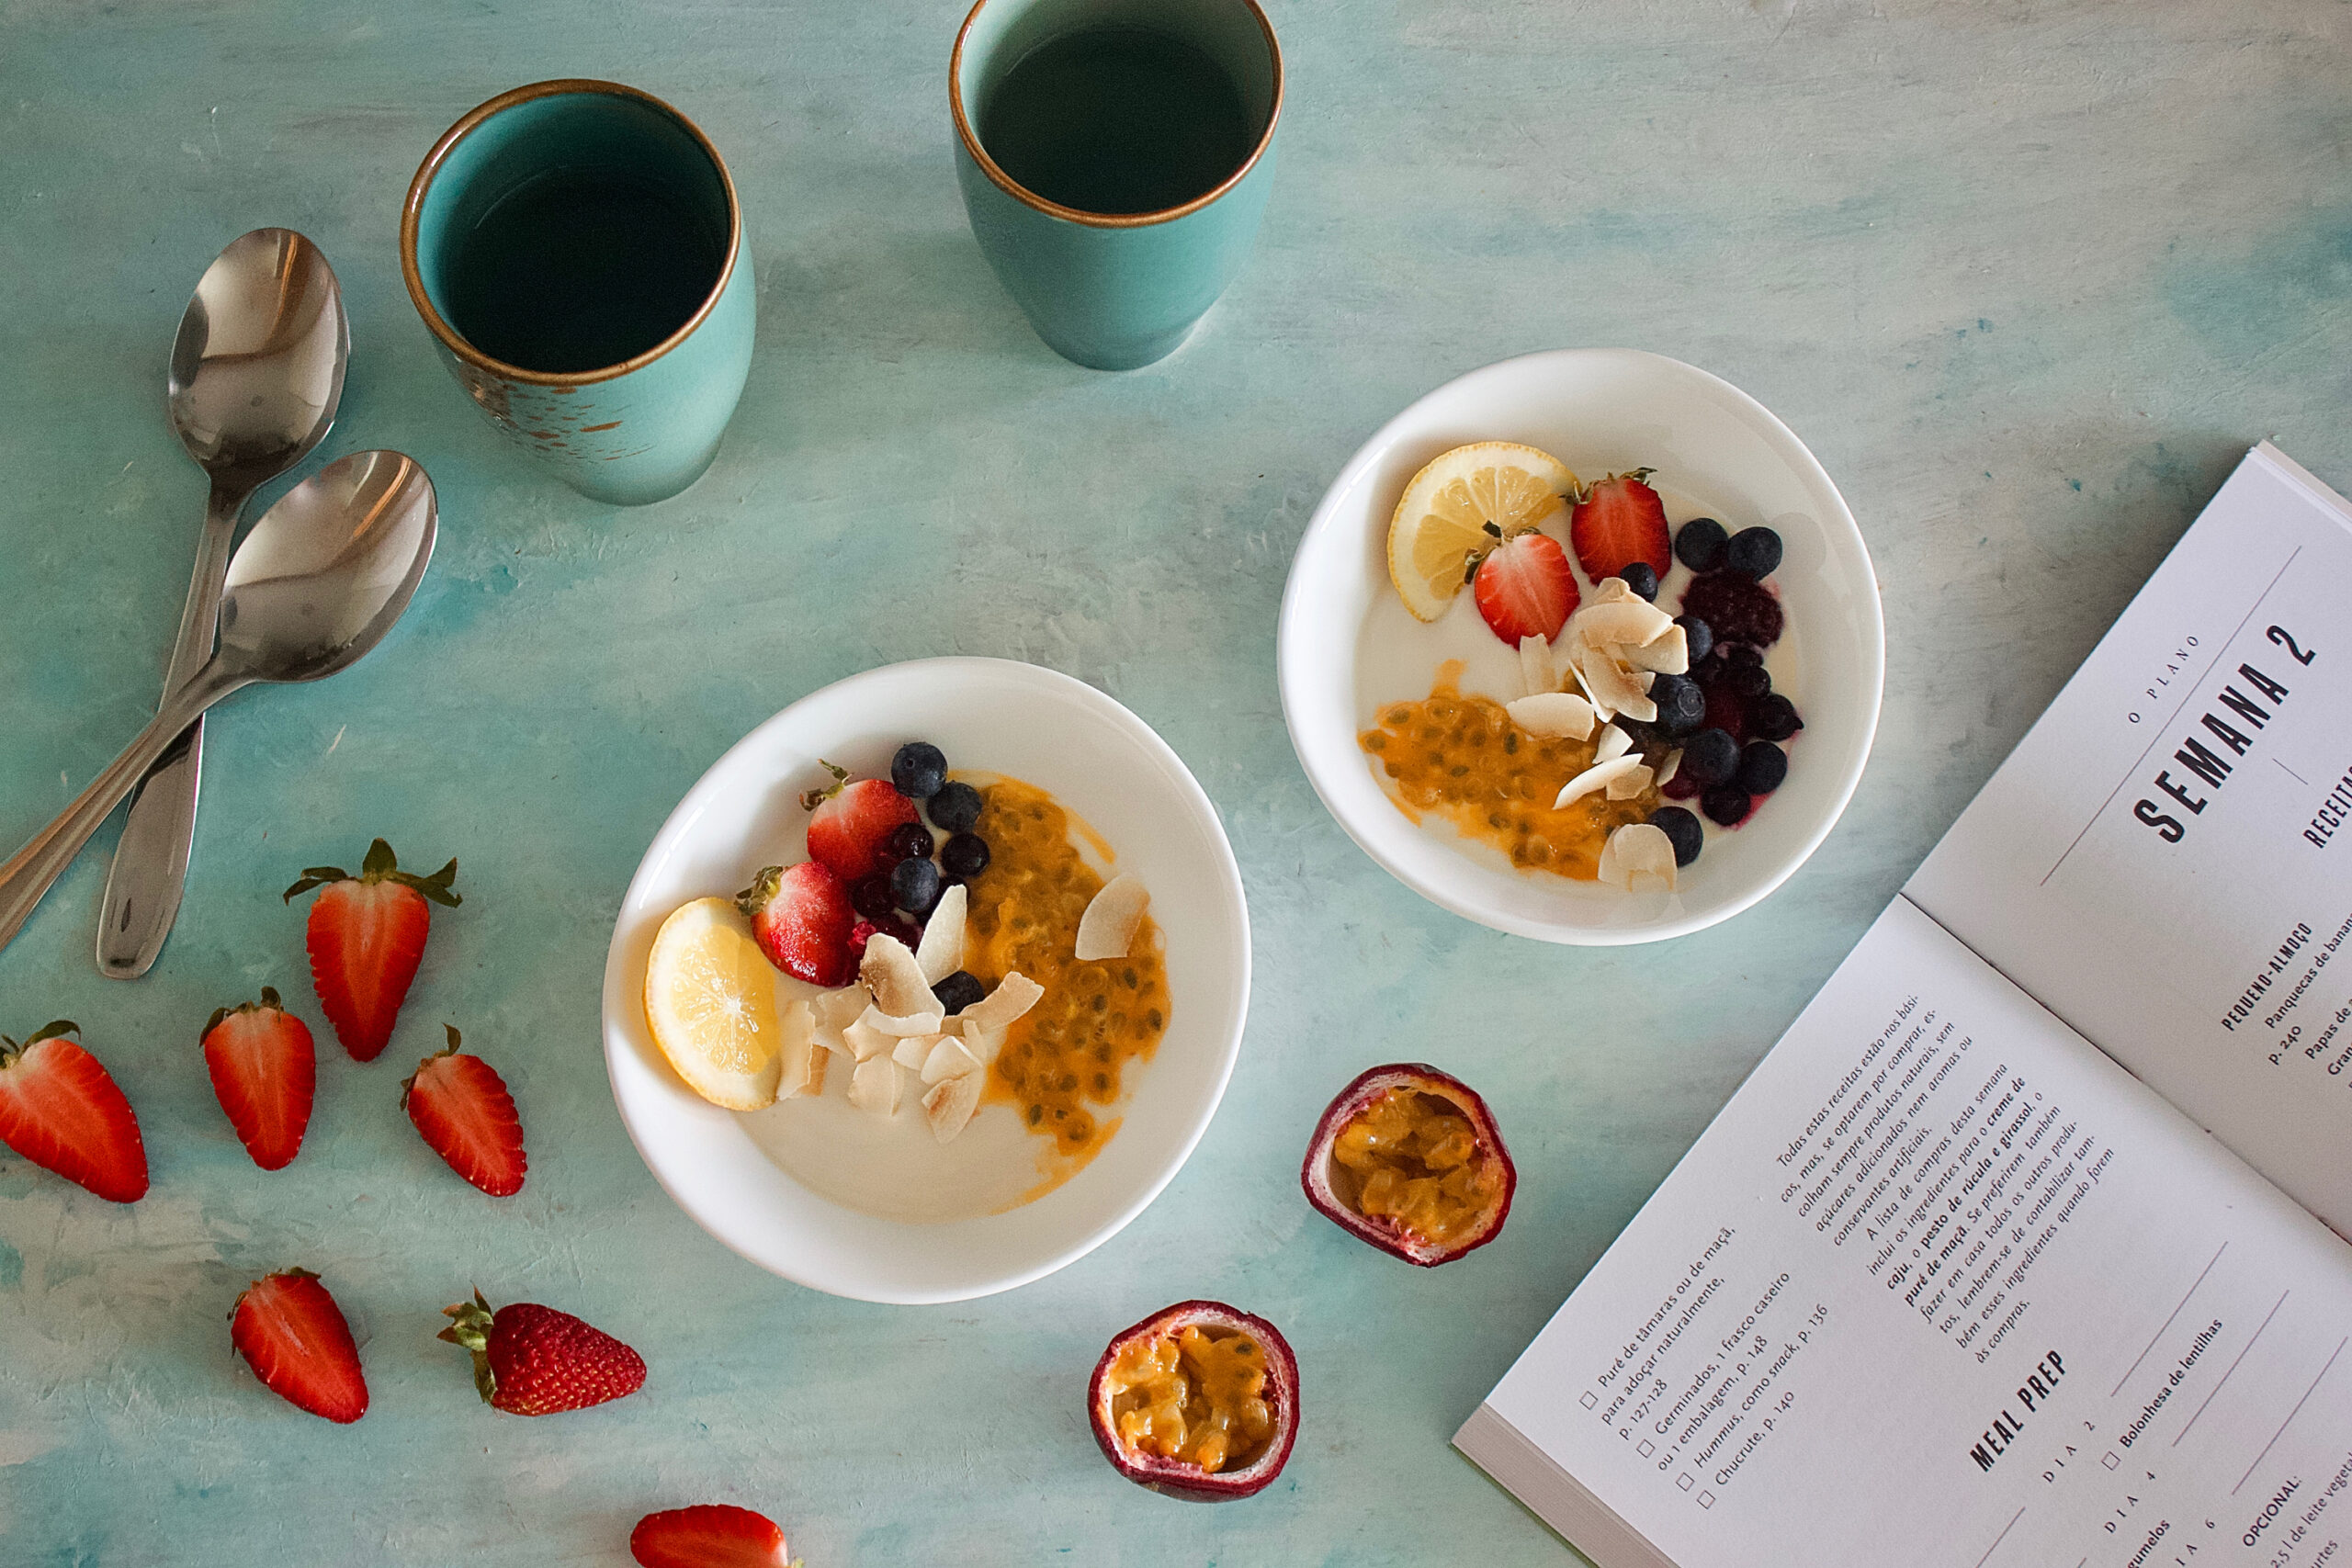 Zest and The City - Bowl with Yogurt and Fruit